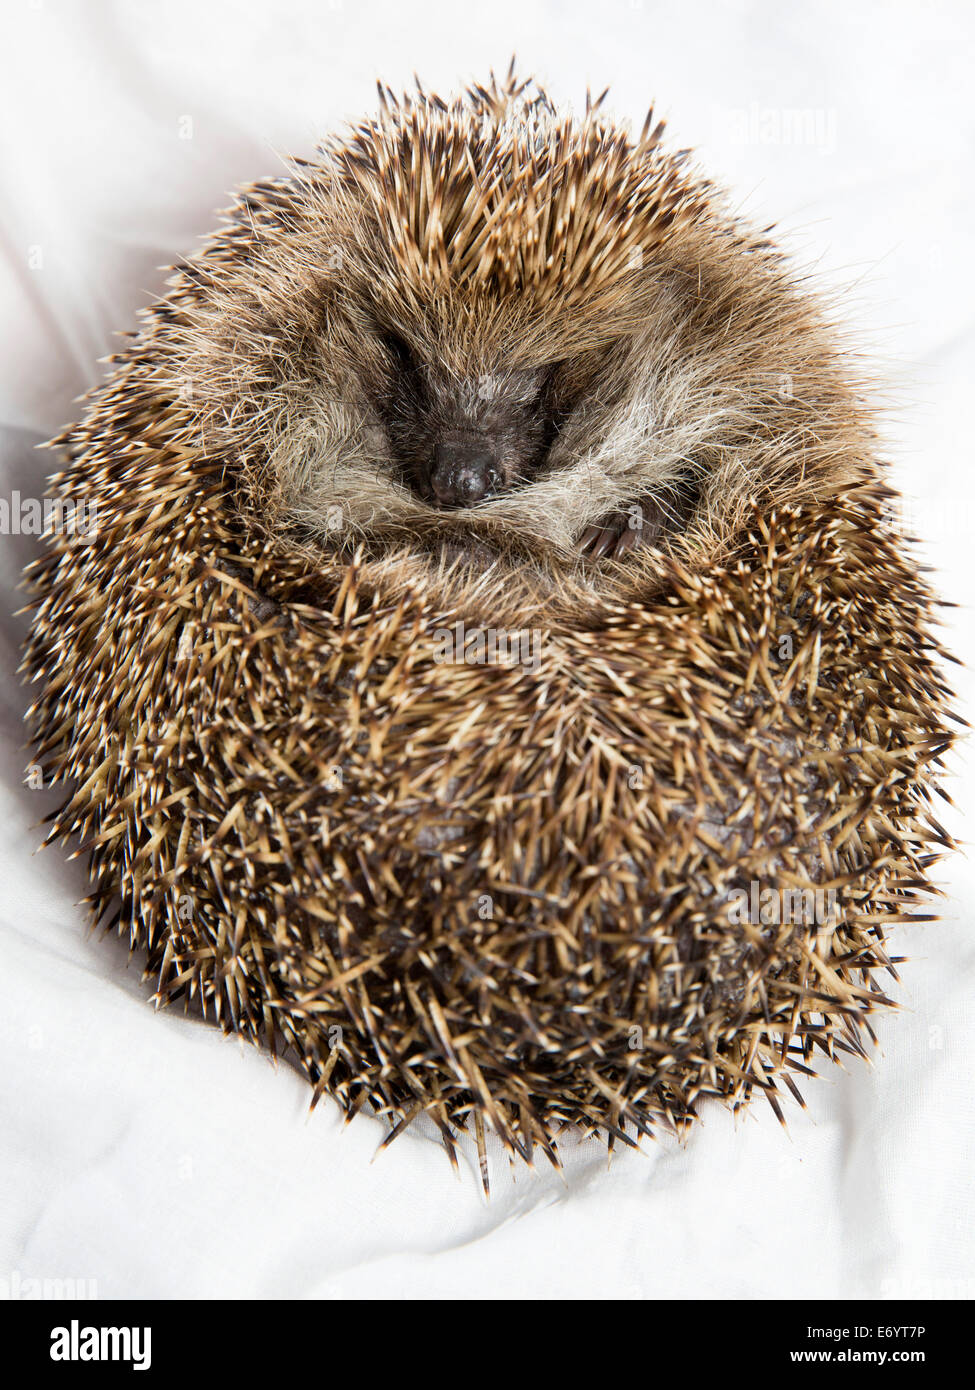 Quack, an overweight hedgehog. - Stock Image